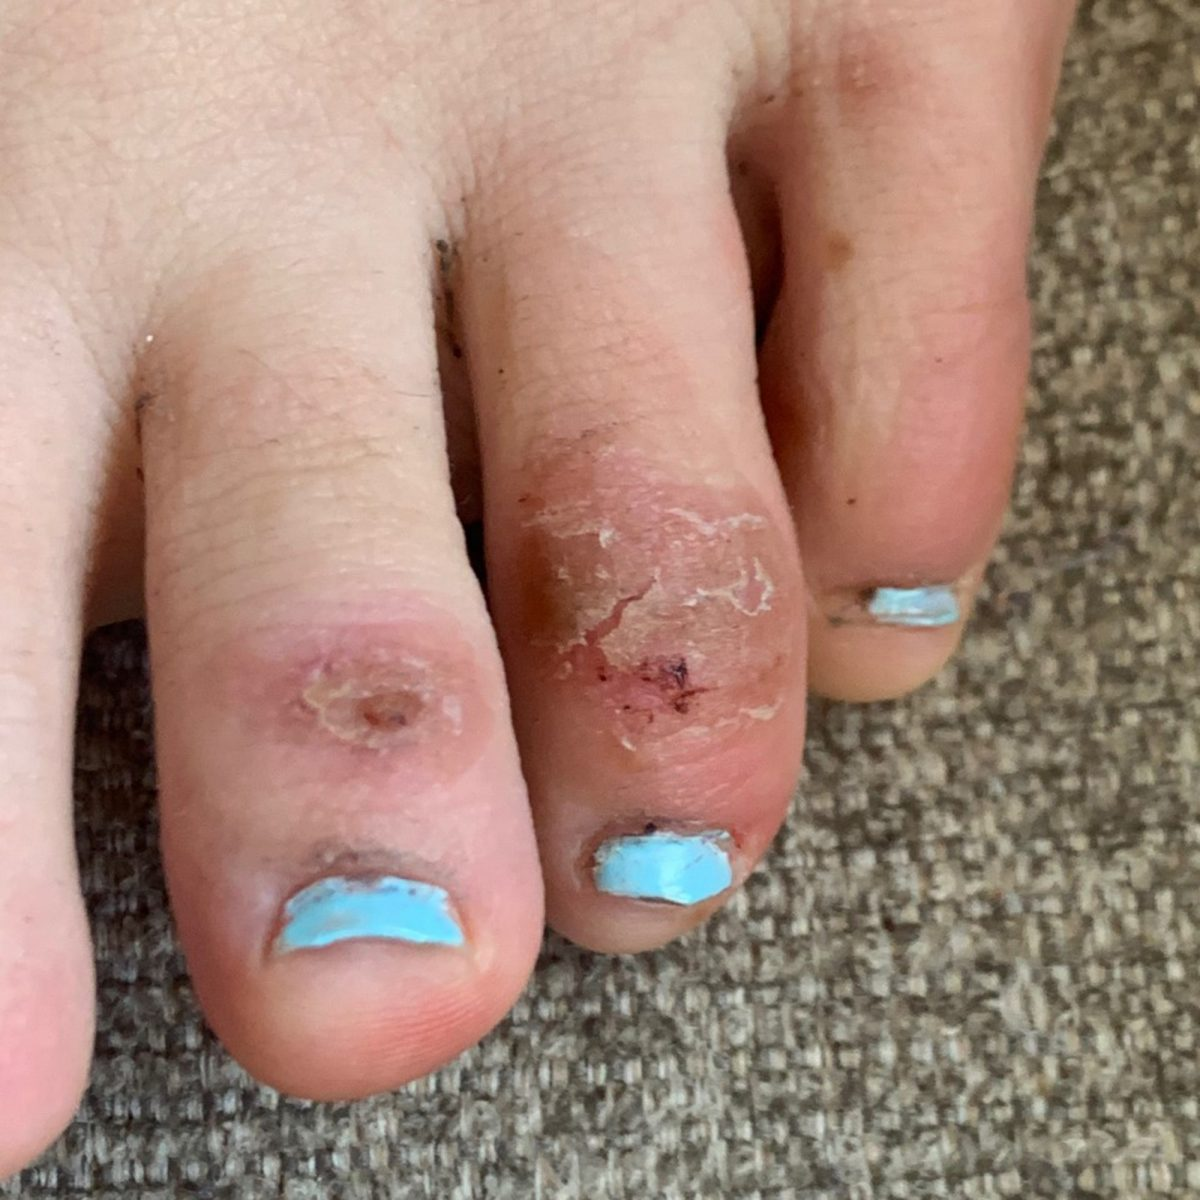 COVID toes 4 weeks later